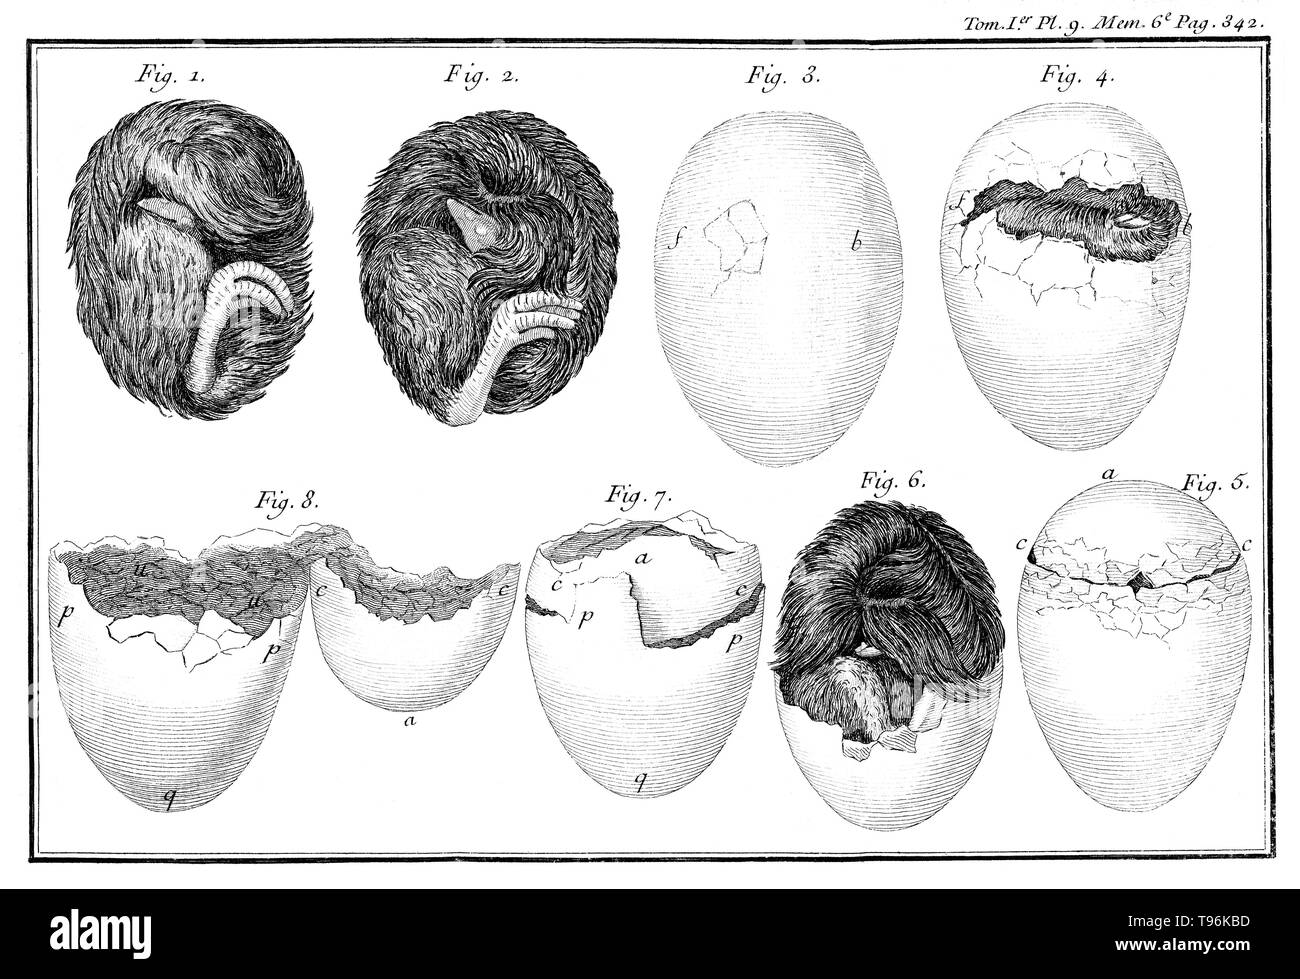 Poultry egg hatching process. Plate 9, page 342. René Antoine Ferchault de Réaumur (February 28, 1683 - October 17, 1757) was a French scientist who contributed to many different fields, especially the study of insects. In 1699 he studied civil law and mathematics. In 1703 he went to Paris, where he continued the study of mathematics and physics, and in 1708 was elected, at the age of 24, a member of the Académie des Sciences. In 1731 he became interested in meteorology, and invented the thermometer scale which bears his name: the Réaumur. His scientific papers deal with many branches of scien - Stock Image